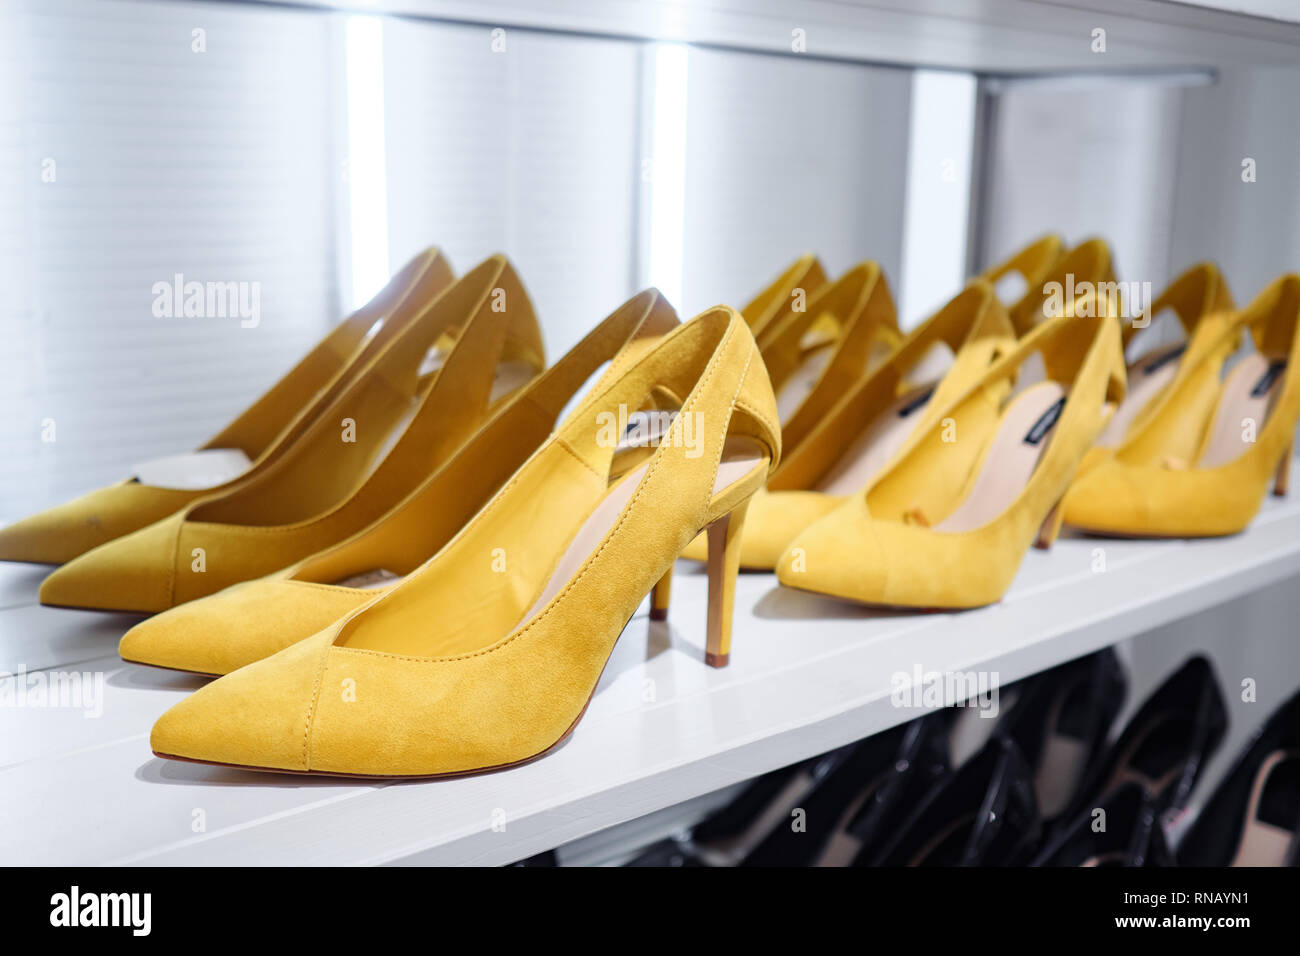 Trendy bright-colored shoes on shelf in shop - Stock Image